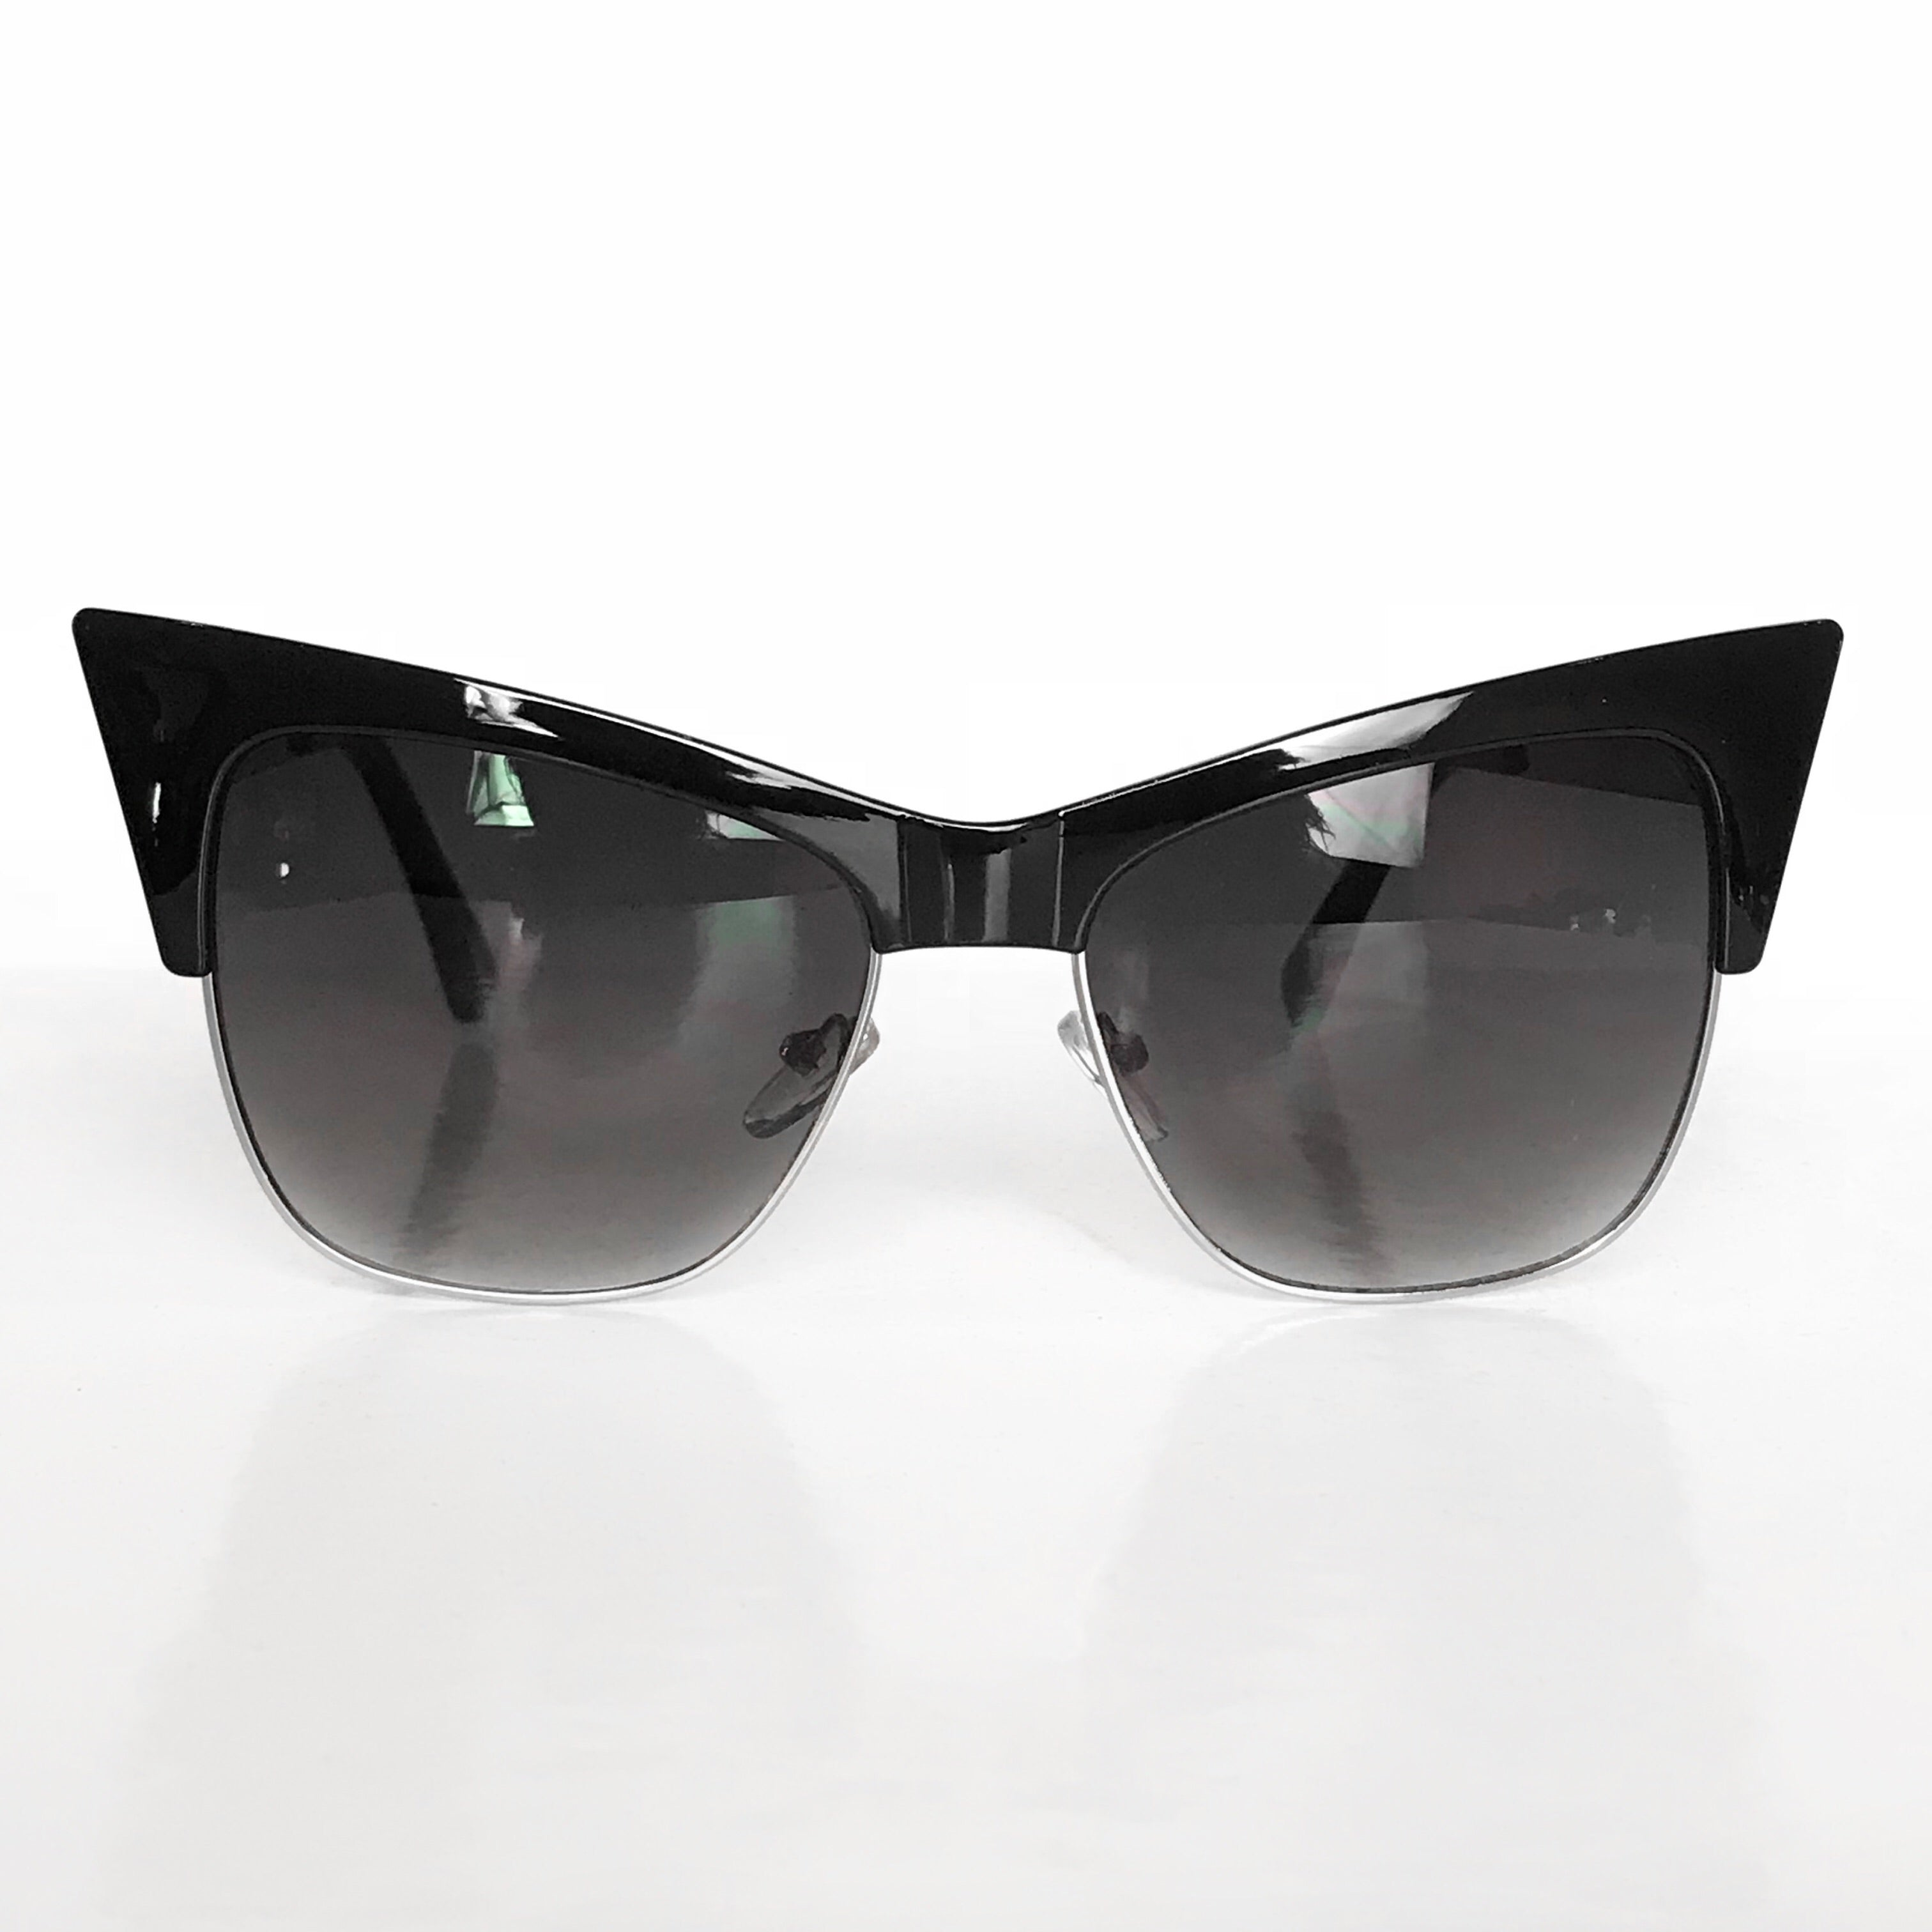 VAMP Cateye Sunglasses- Black